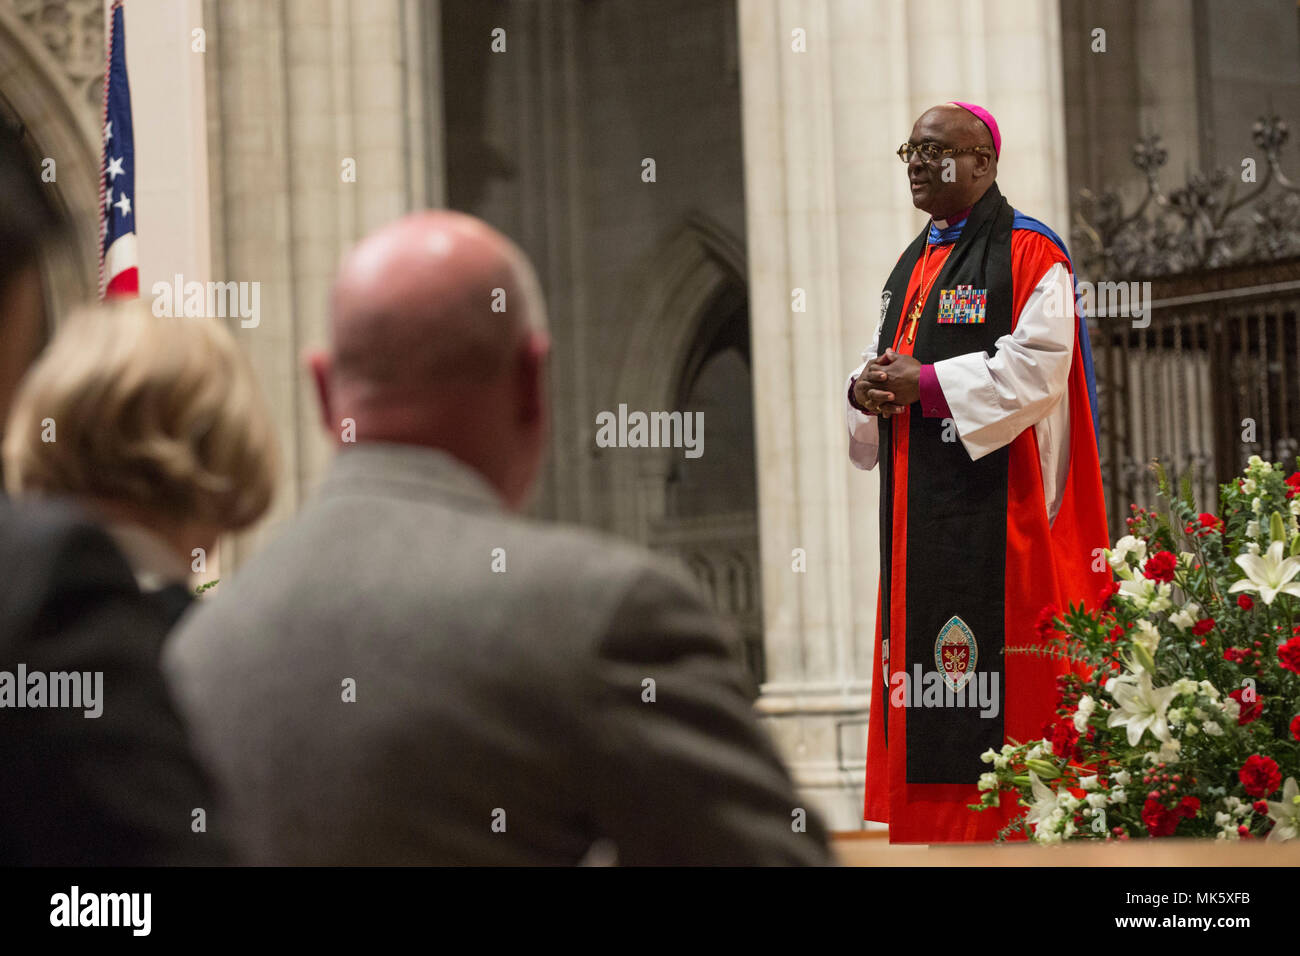 The Right Reverend Carl W. Wright, bishop suffragan for Armed Service and Federal Ministries, gives remarks during the Marine Corps Worship Service at the Washington National Cathedral,Washington, D.C., Nov. 12, 2017. The worship service honored the Marines Corps' 242nd anniversary. (U.S. Marine Corps photo by Lance Cpl. Alex A. Quiles) - Stock Image